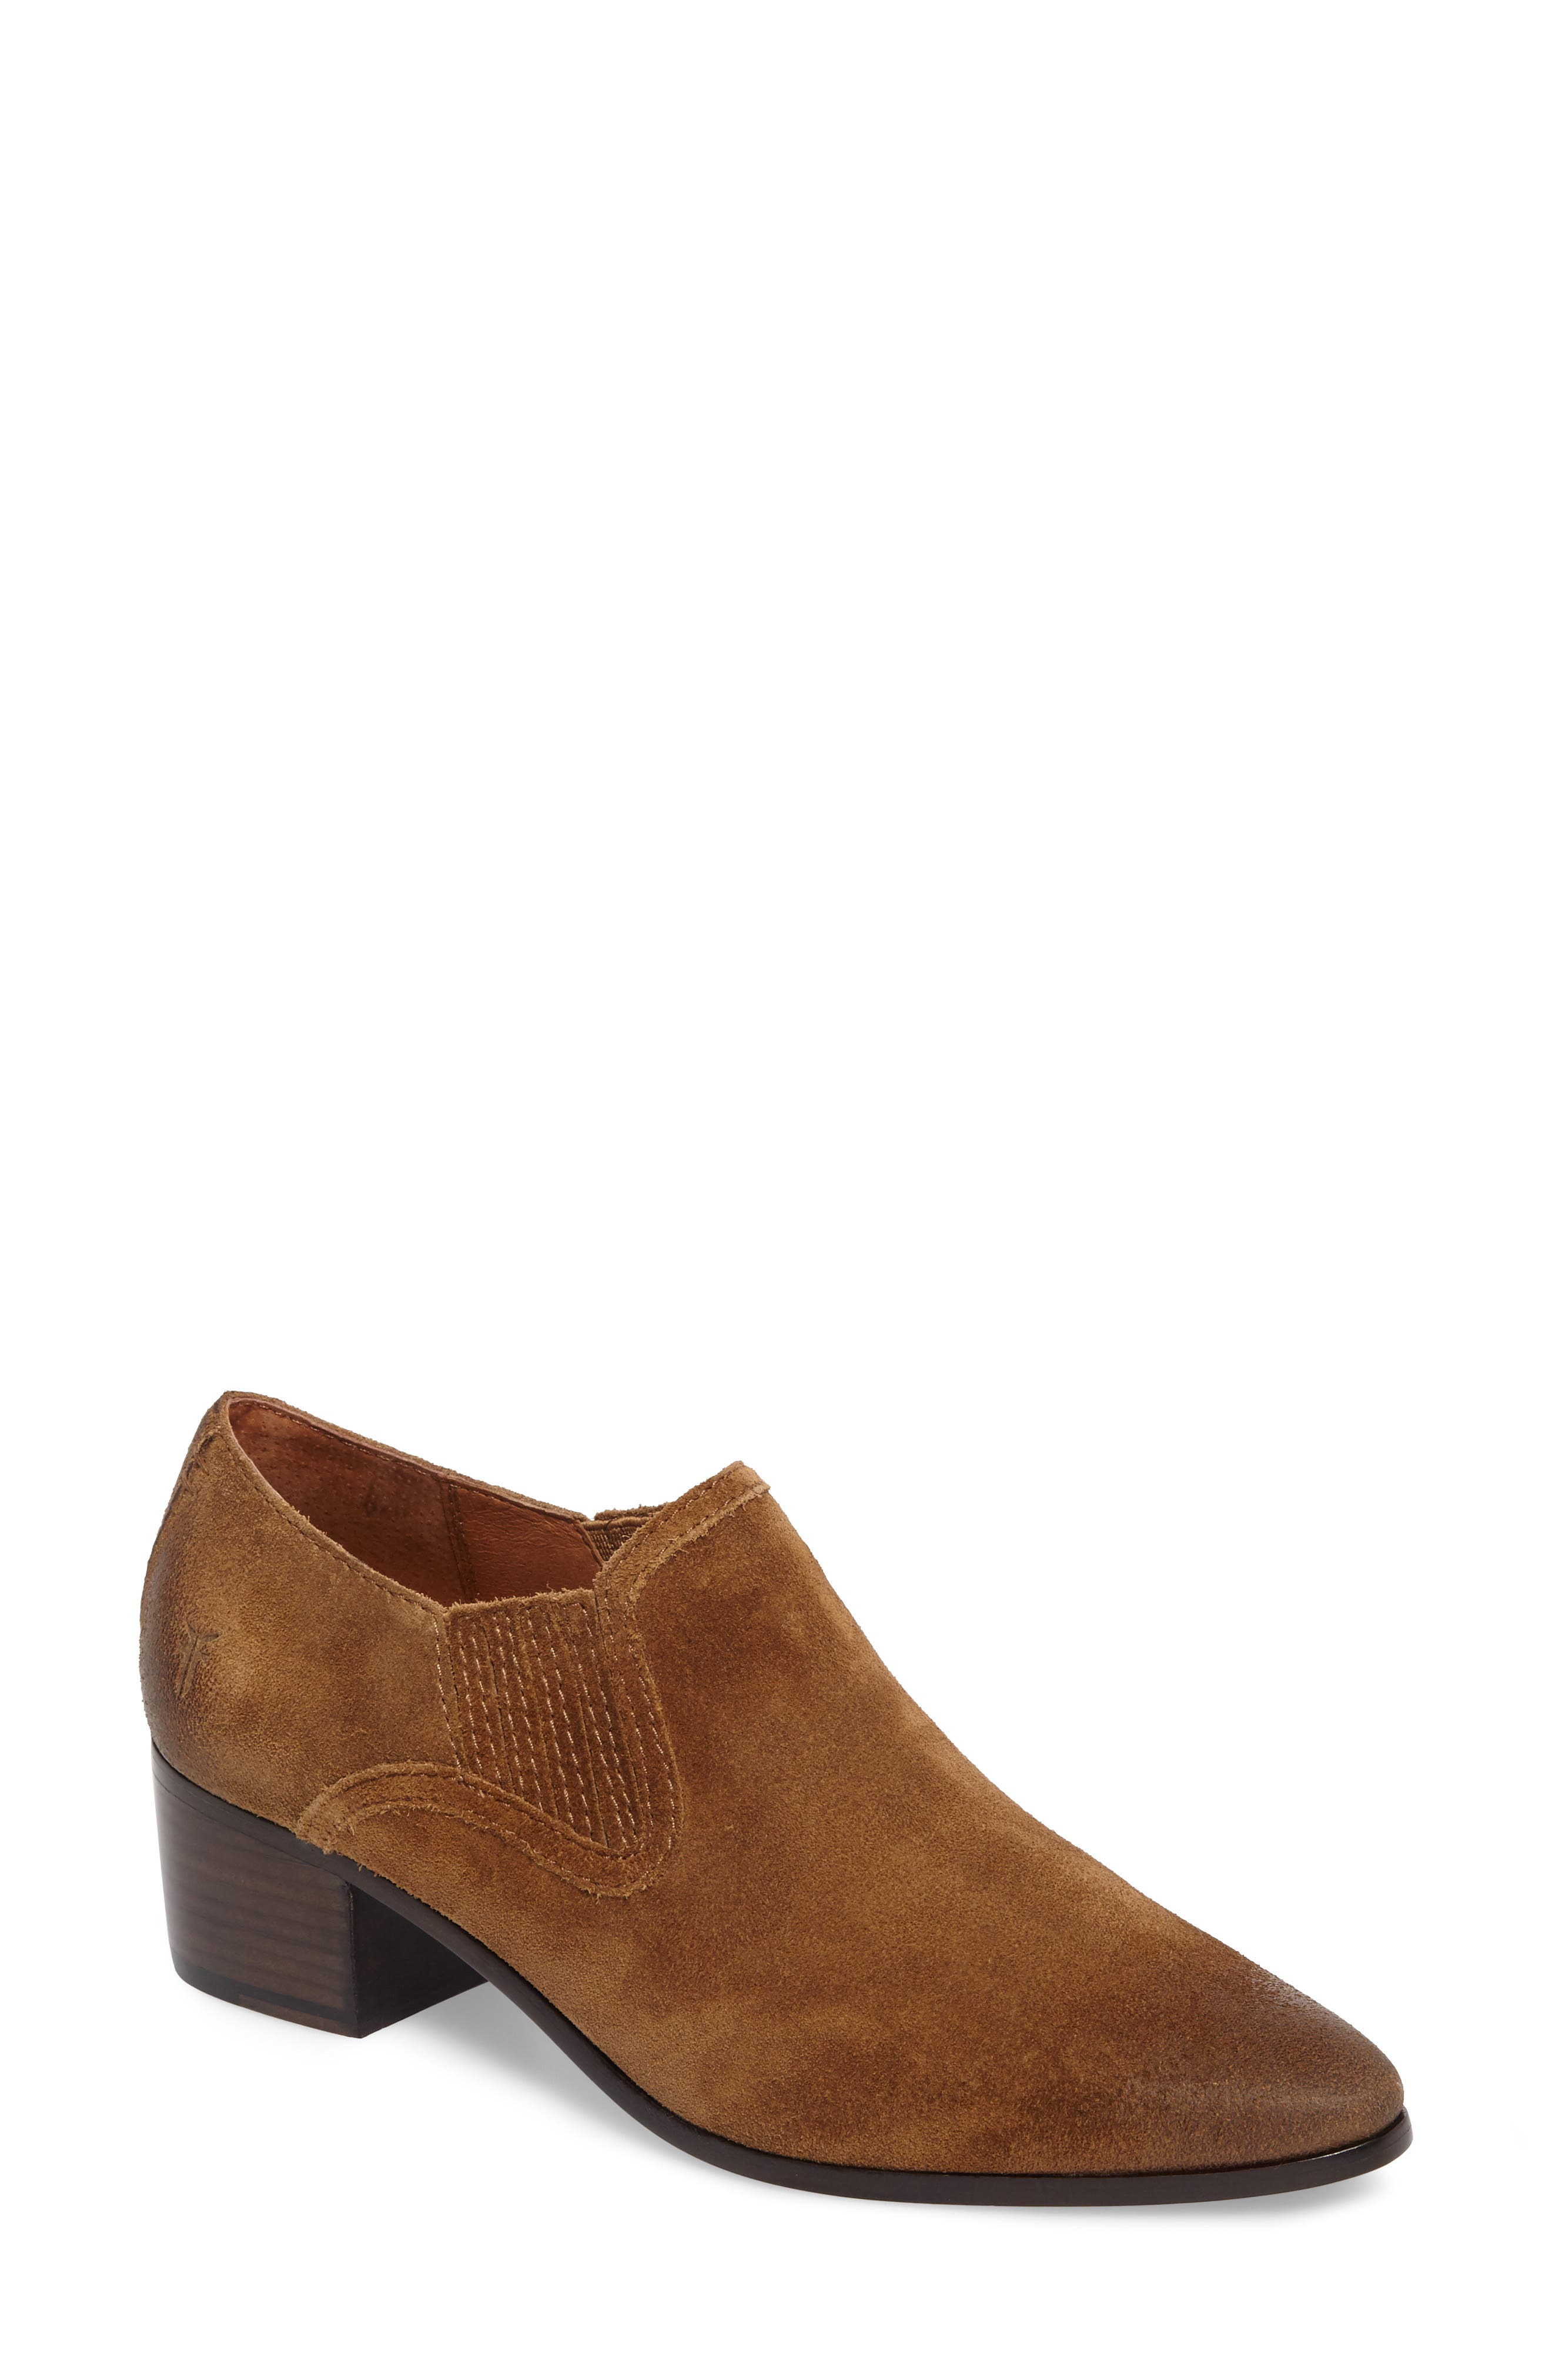 Eleanor Pointy Toe Bootie,                             Main thumbnail 1, color,                             215